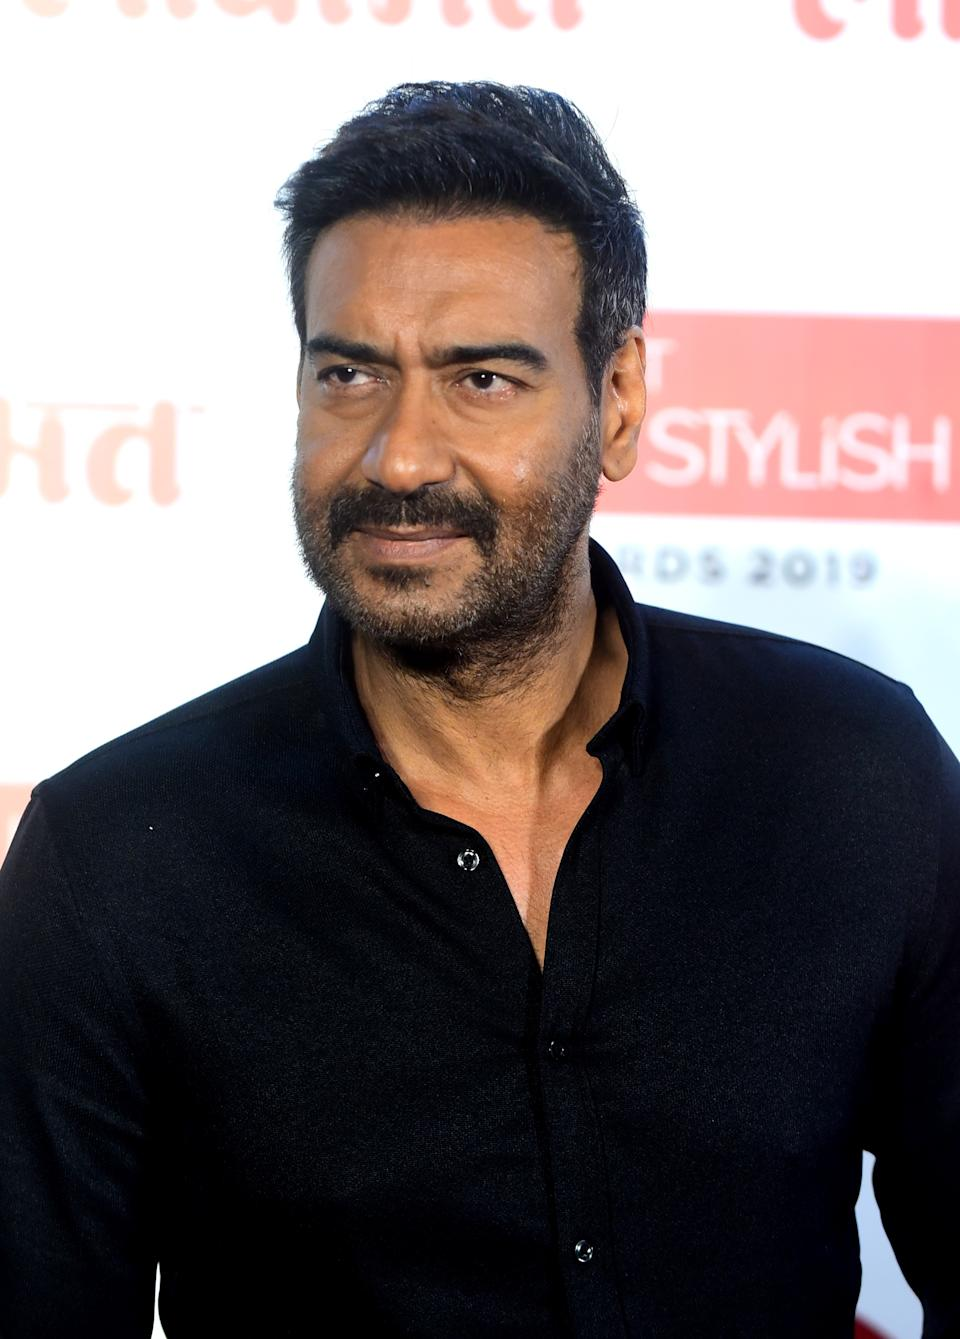 In this picture taken on December 18, 2019 Bollywood actor Ajay Devgn arrives at the Lokmat Most Stylish Awards in Mumbai. (Photo by Sujit Jaiswal / AFP) (Photo by SUJIT JAISWAL/AFP via Getty Images)